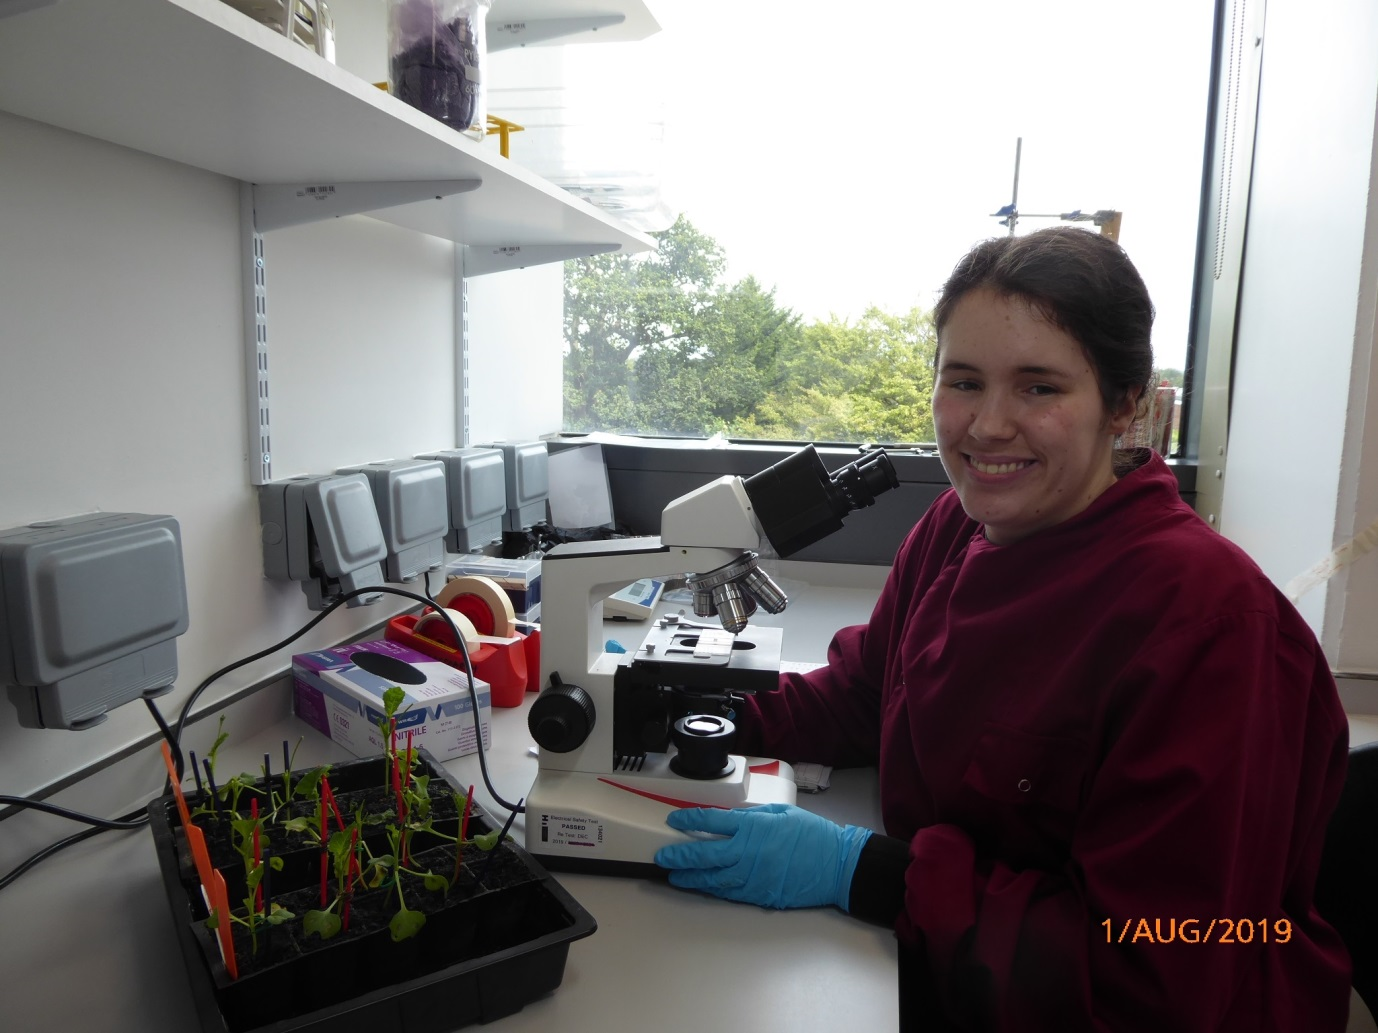 E:\BSPP\BSPP Newsletter\No. 91 Spring 2020\Summer students\12. Lucy Anscombe\Lucy working in the lab.jpg